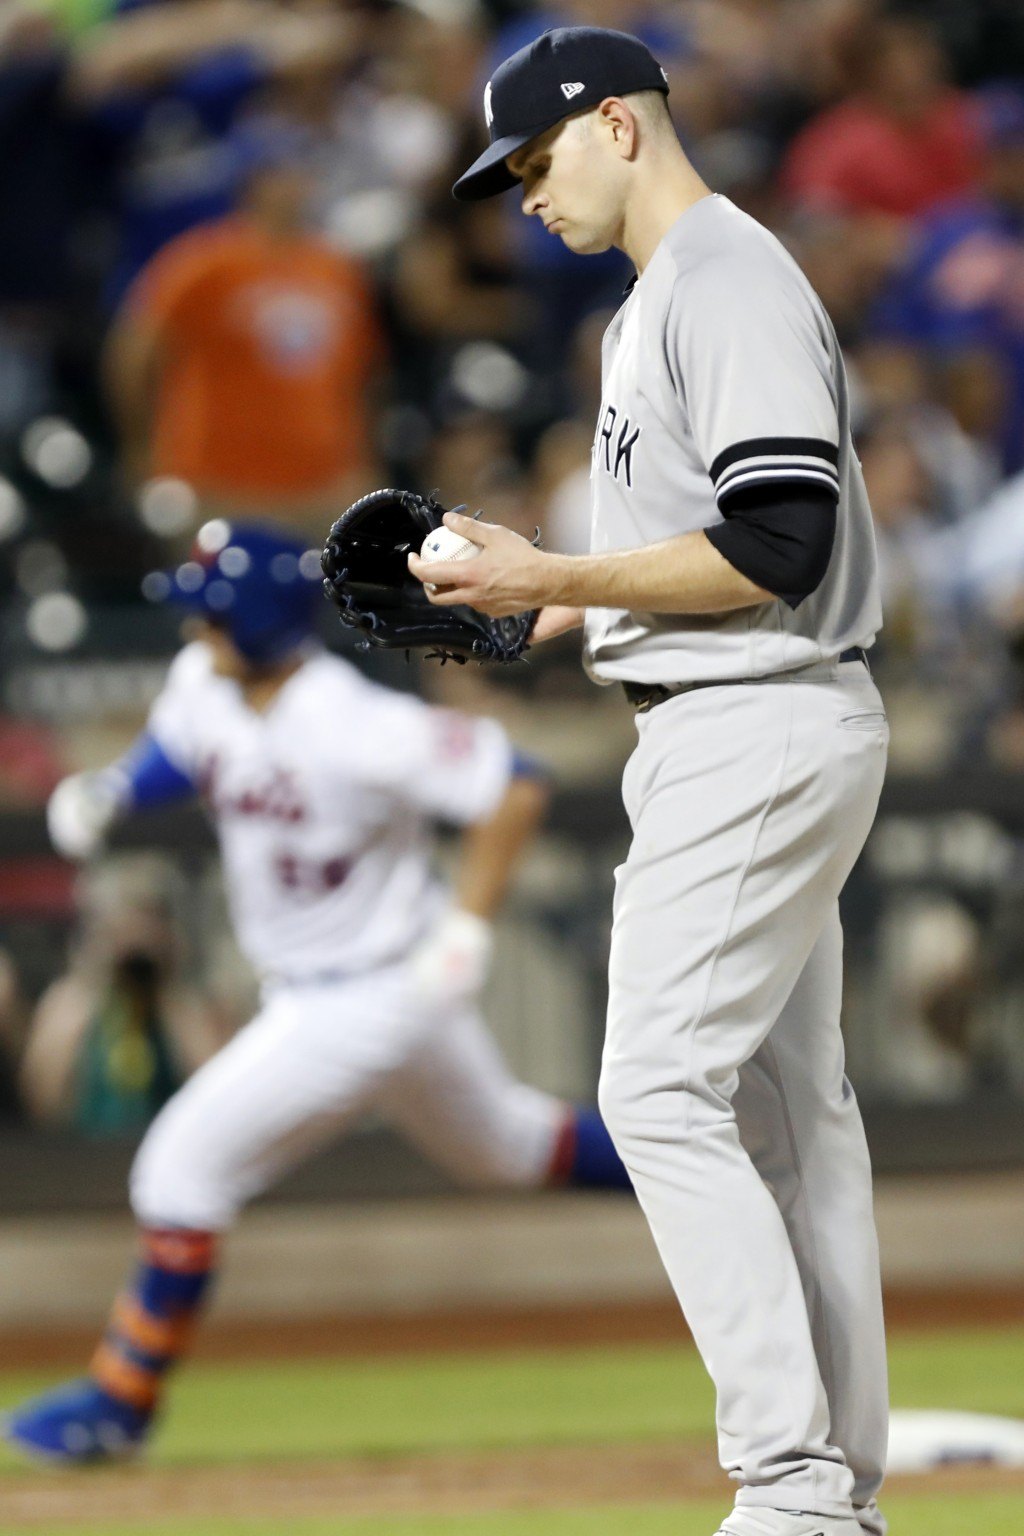 New York Mets' J.D. Davis, left, runs the bases past New York Yankees' starting pitcher James Paxton, who looks at the ball after allowing a solo home